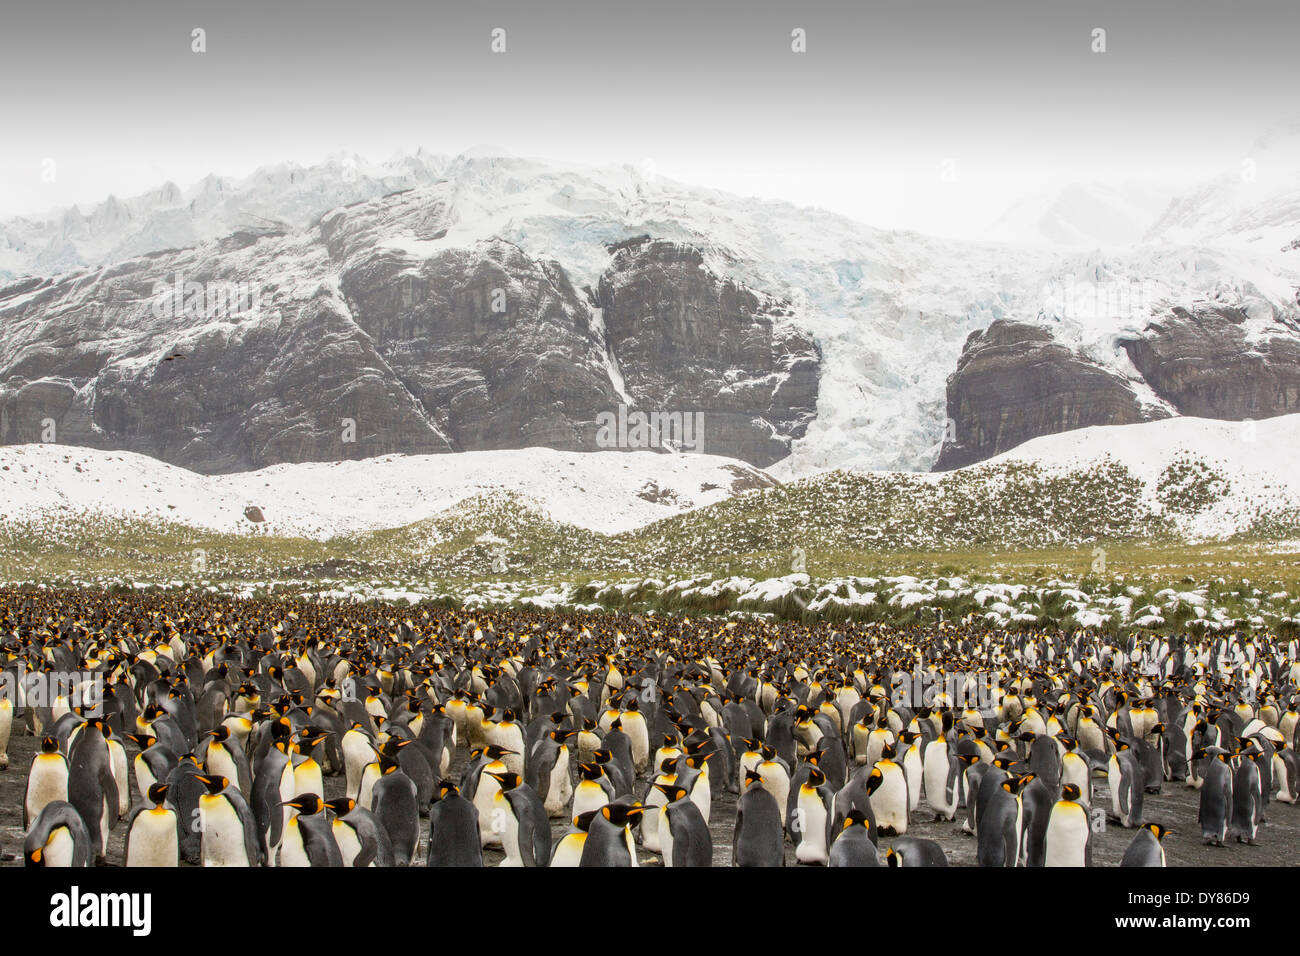 King Penguins on the beach at Gold Harbour on South Georgia, Southern Ocean with a rapidly retreating glacier behind. - Stock Image